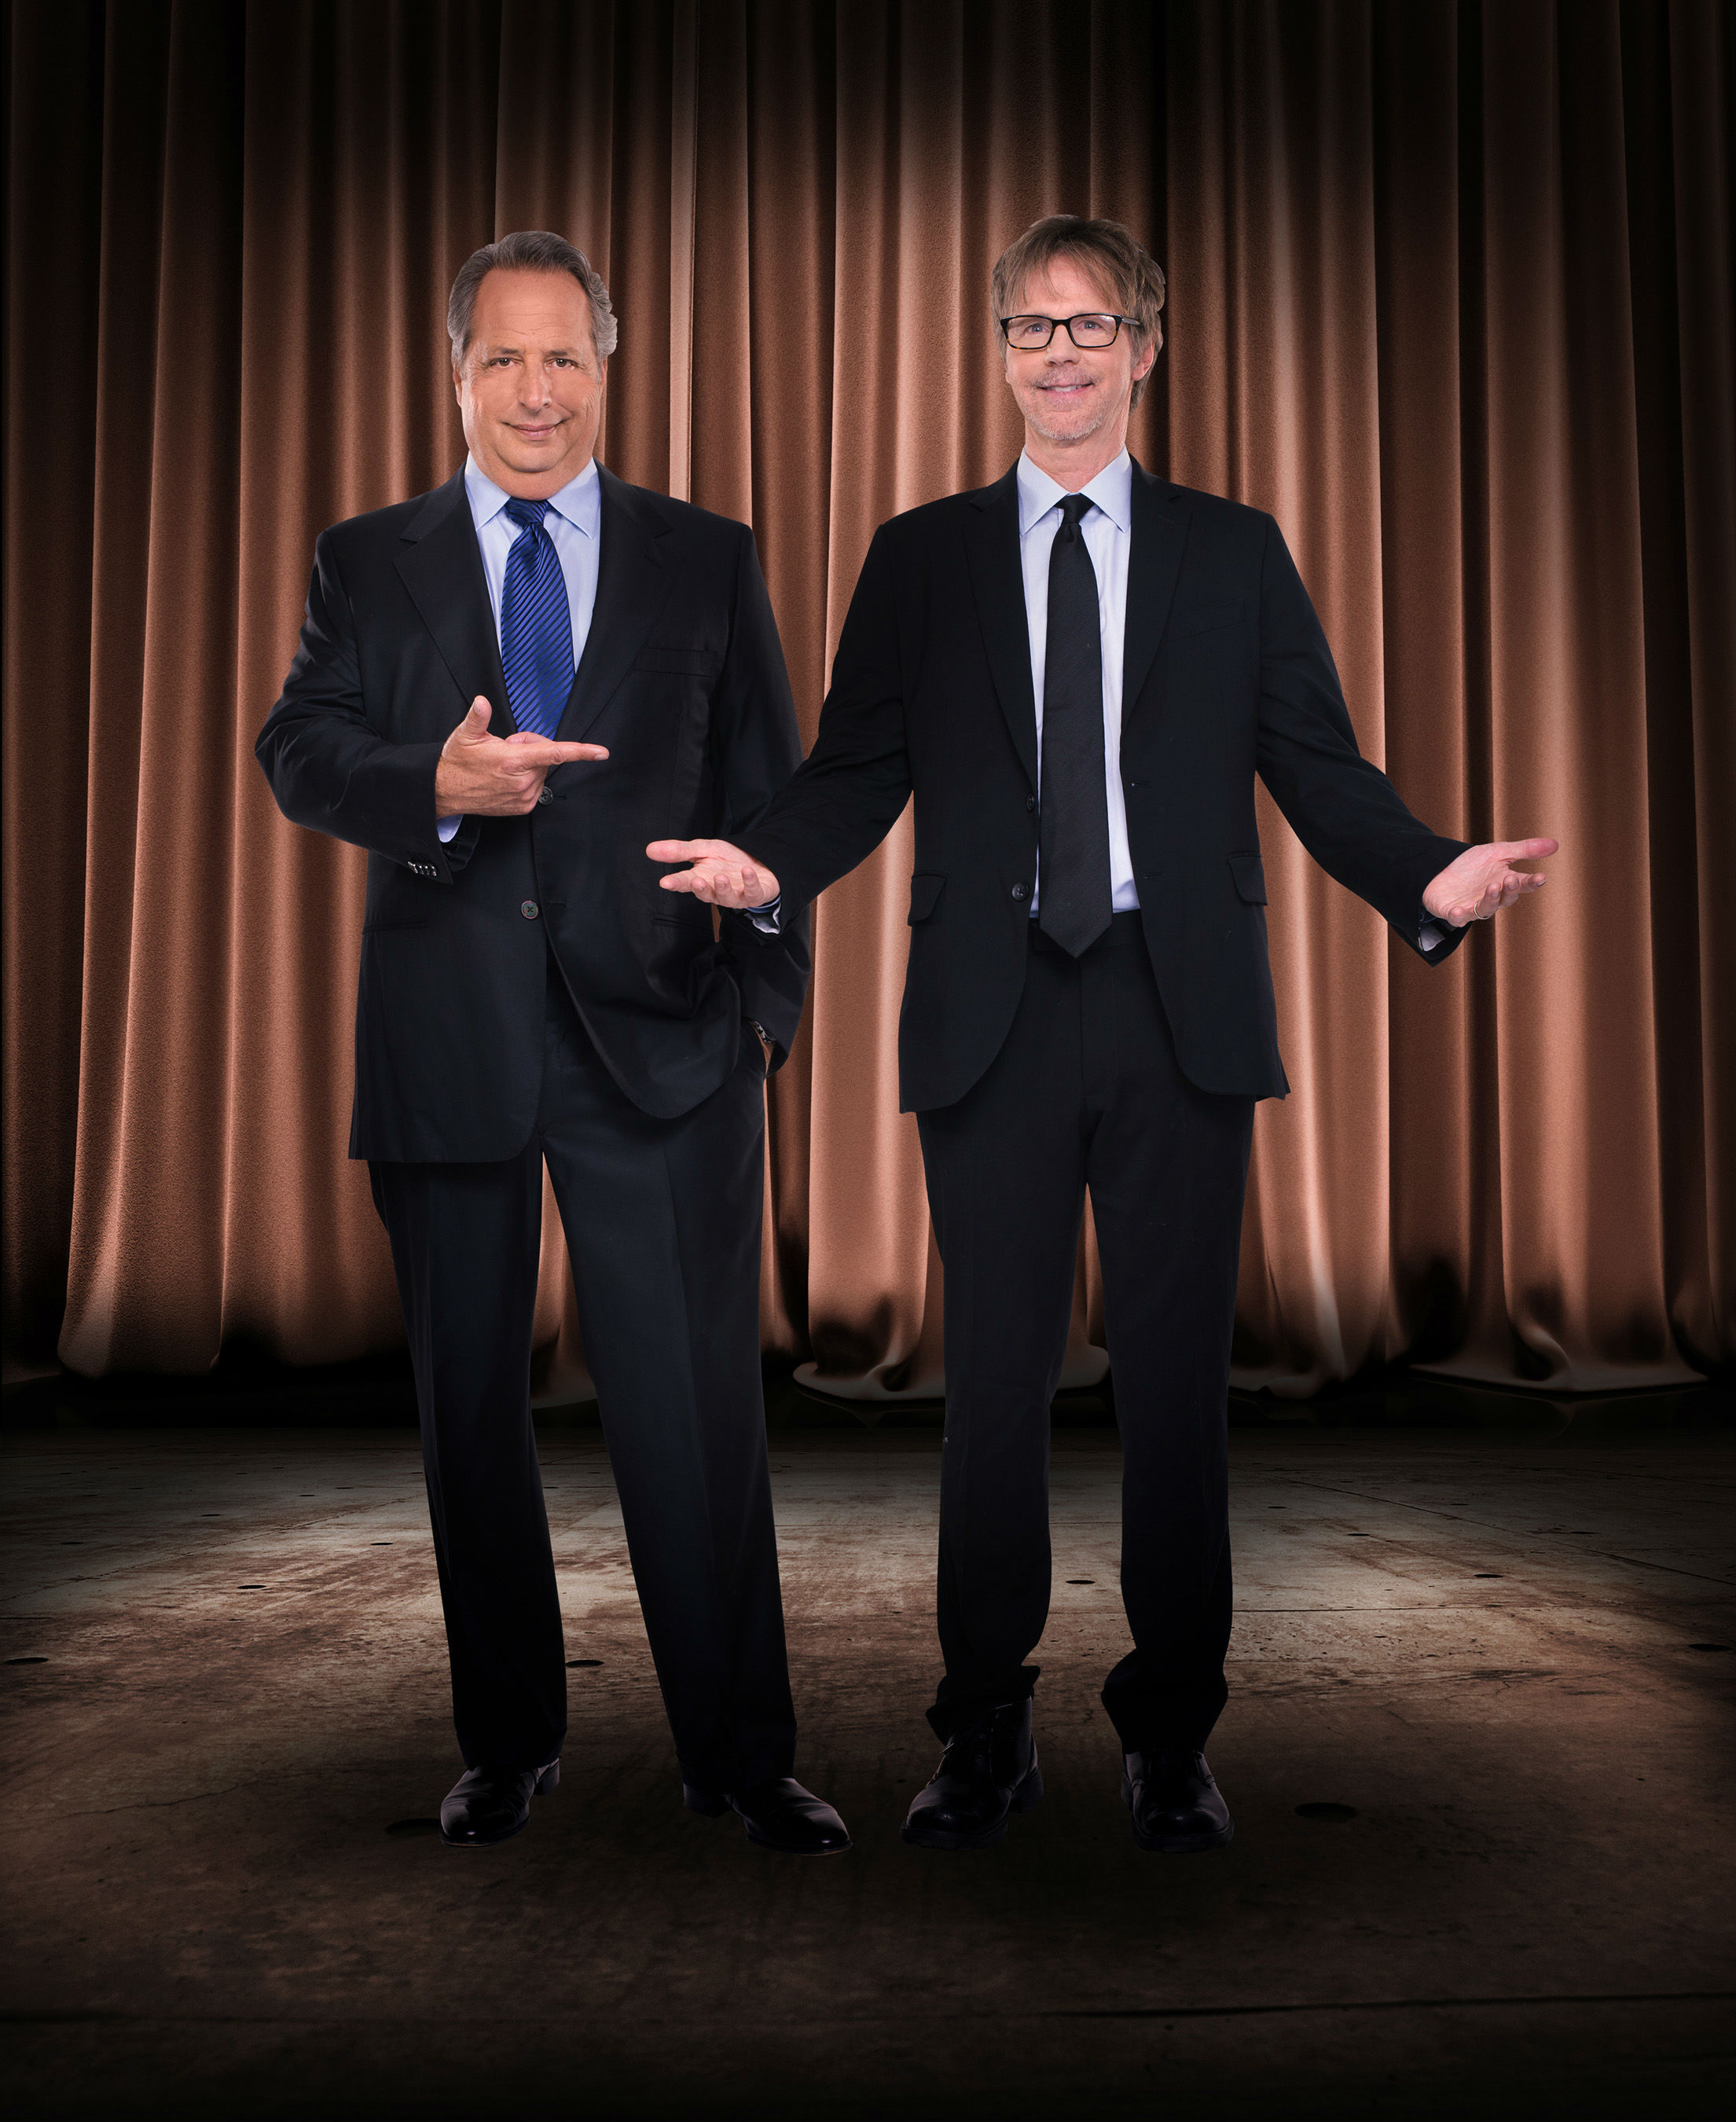 SNL veterans Dana Carvey and Jon Lovitz reunite at The Foundry inside SLS Las Vegas for a dynamic 20-show comedy residency.